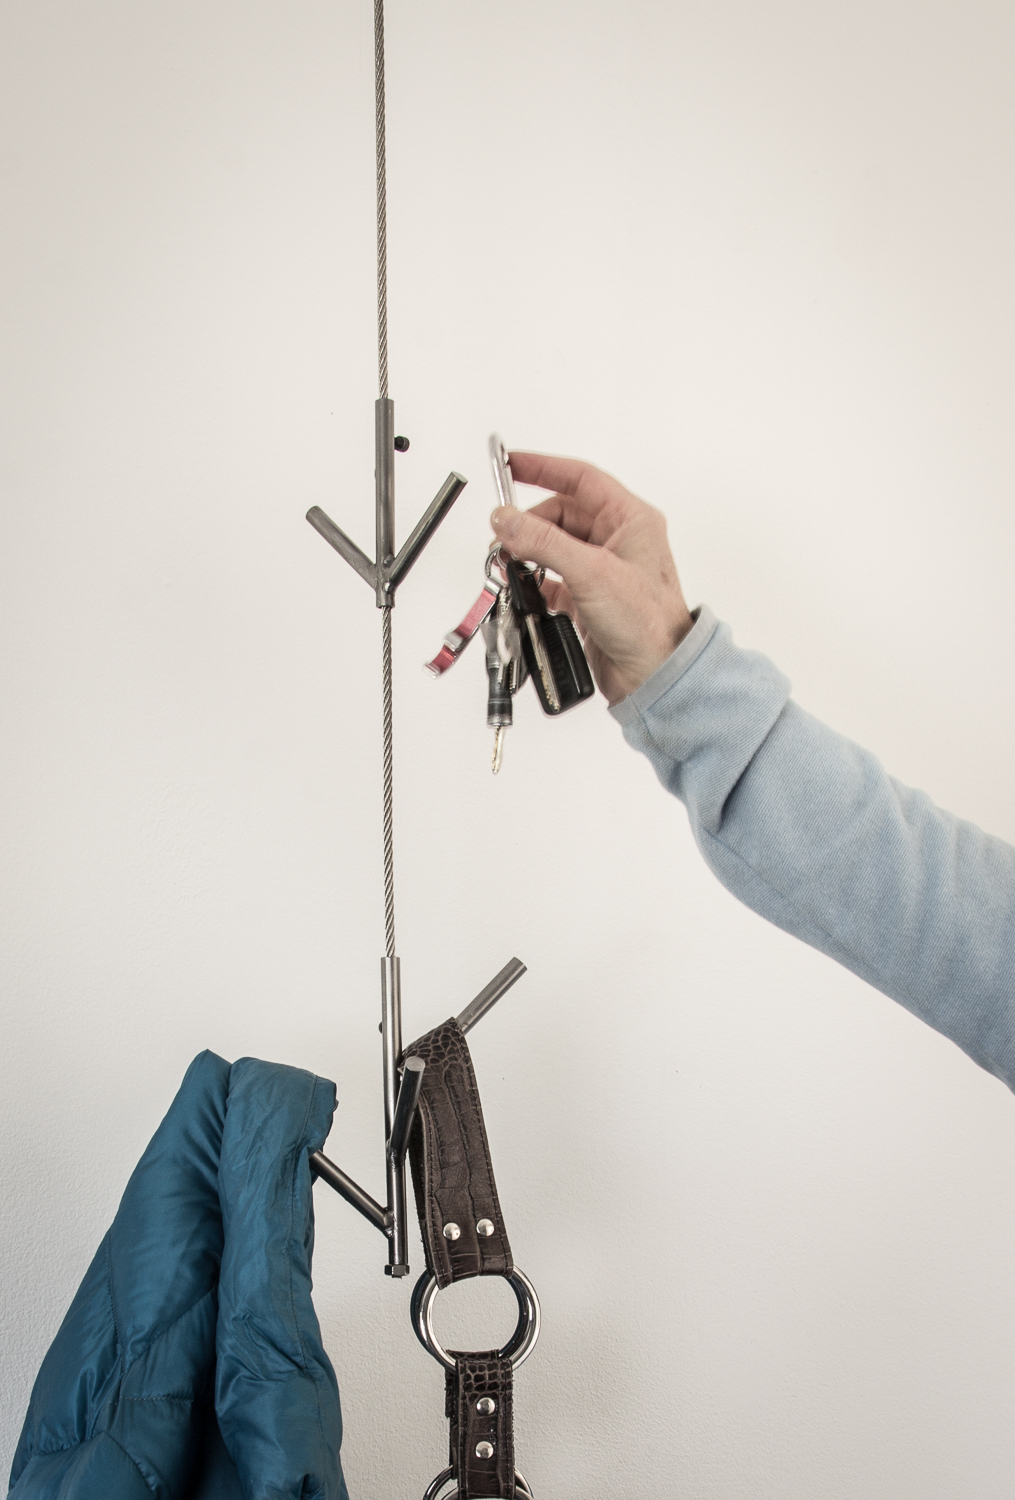 Hooked  Single  cable for your keys, coats and stuff you always misplace.